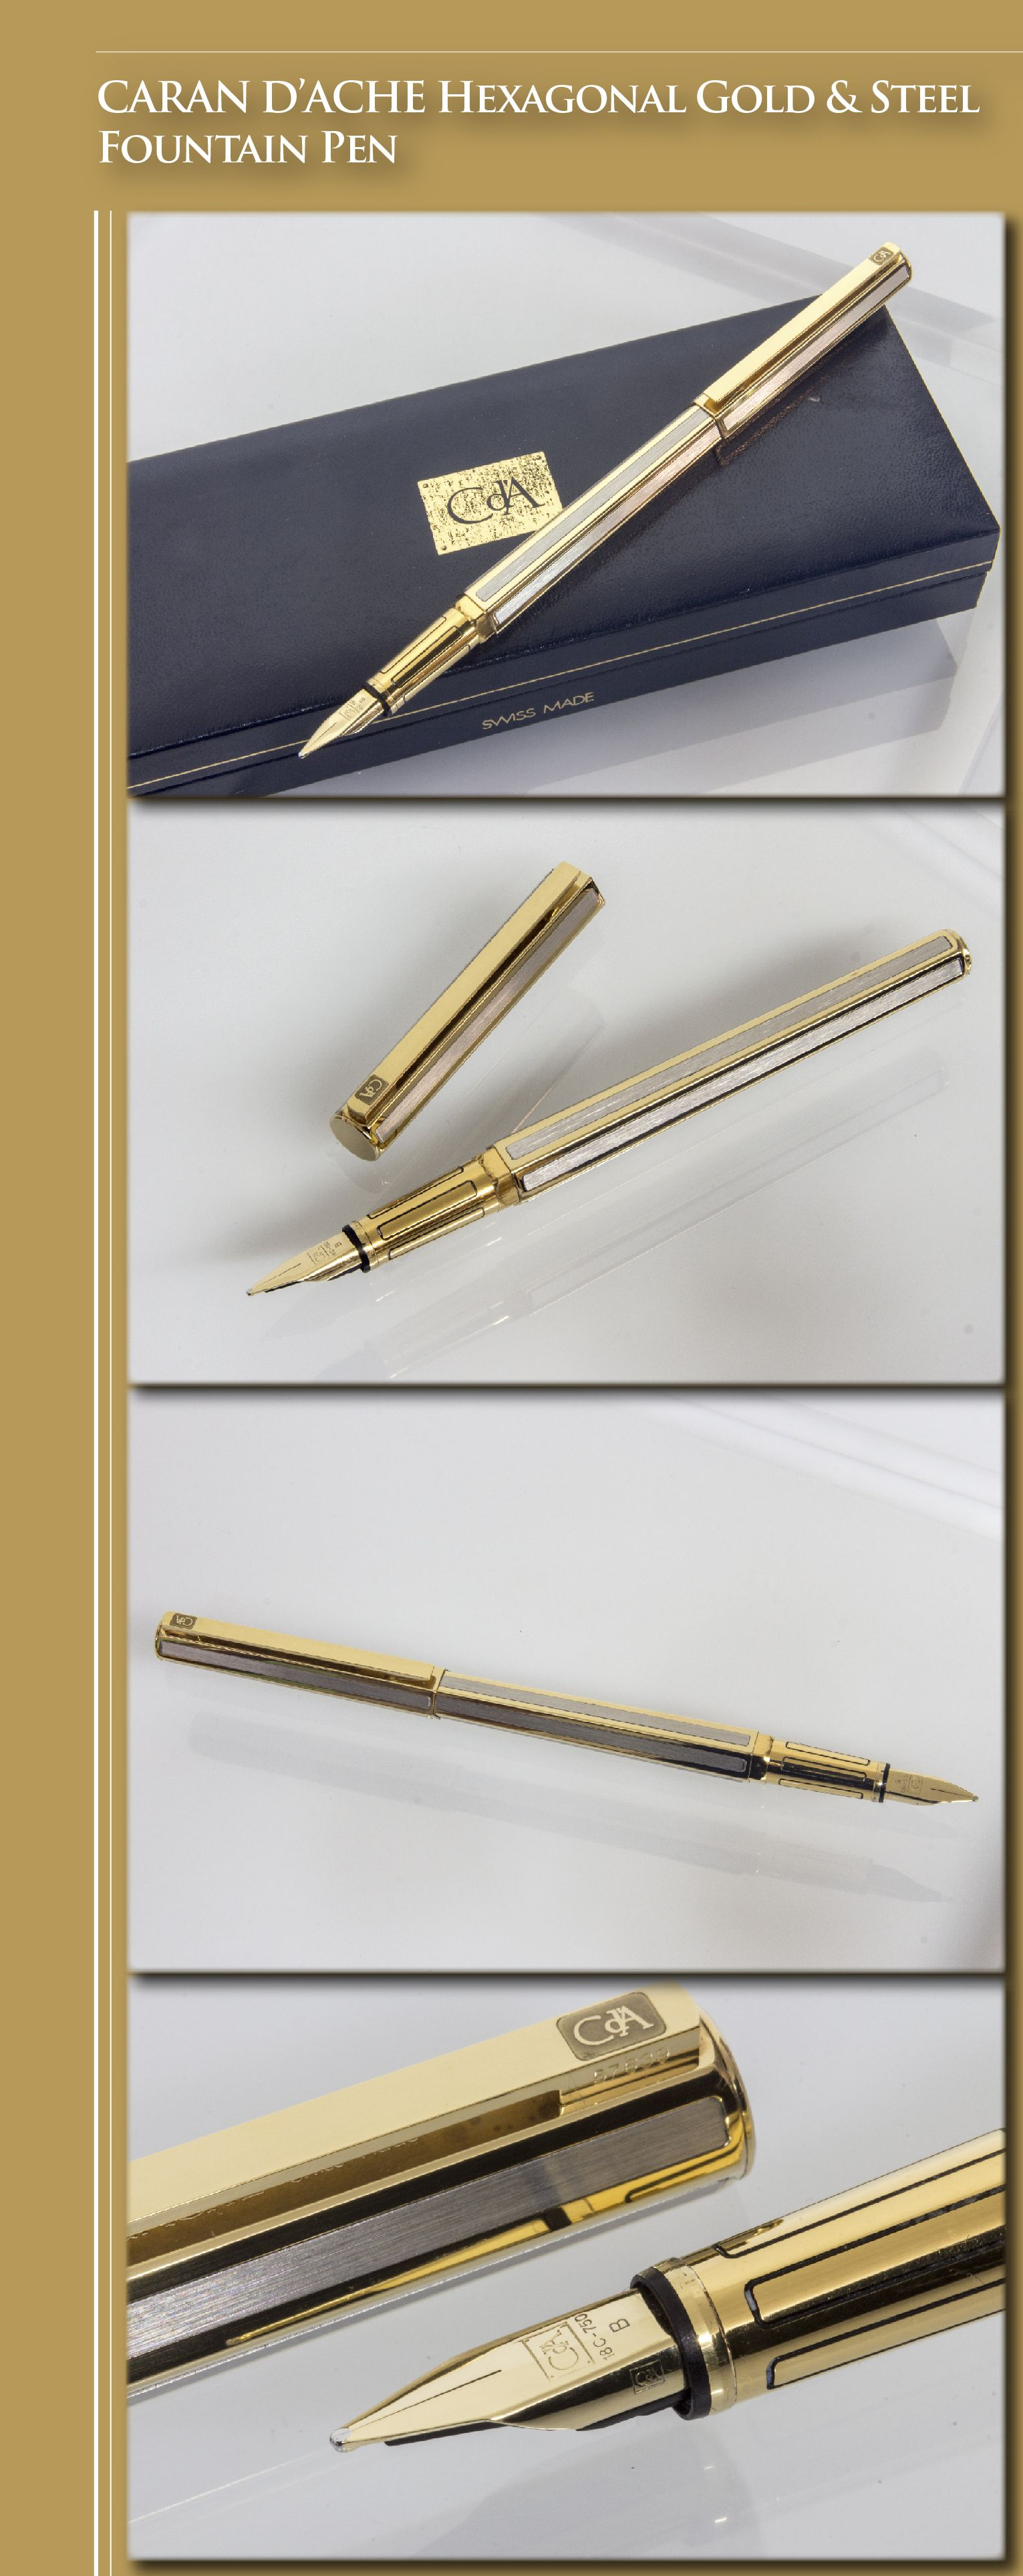 CARAN D'ACHE Hexagonal Gold & Steel Fountain Pen (brass body with steel and gold inlays, gold-plated trim and , 18kt gold nib) - 1990s / Switzerland